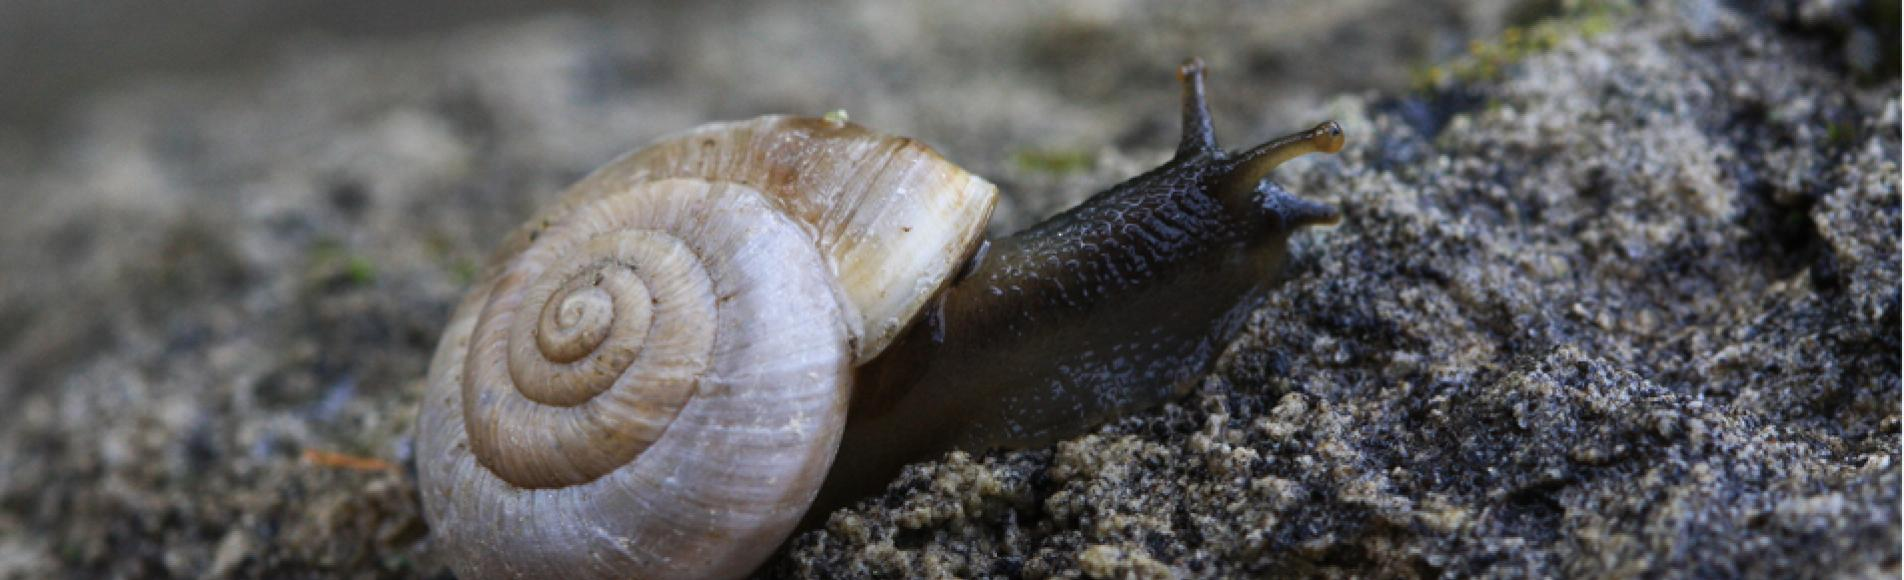 Chilostoma fontenillii alpinum - Escargot montagnard- © Damien Combrisson - Parc national des Écrins